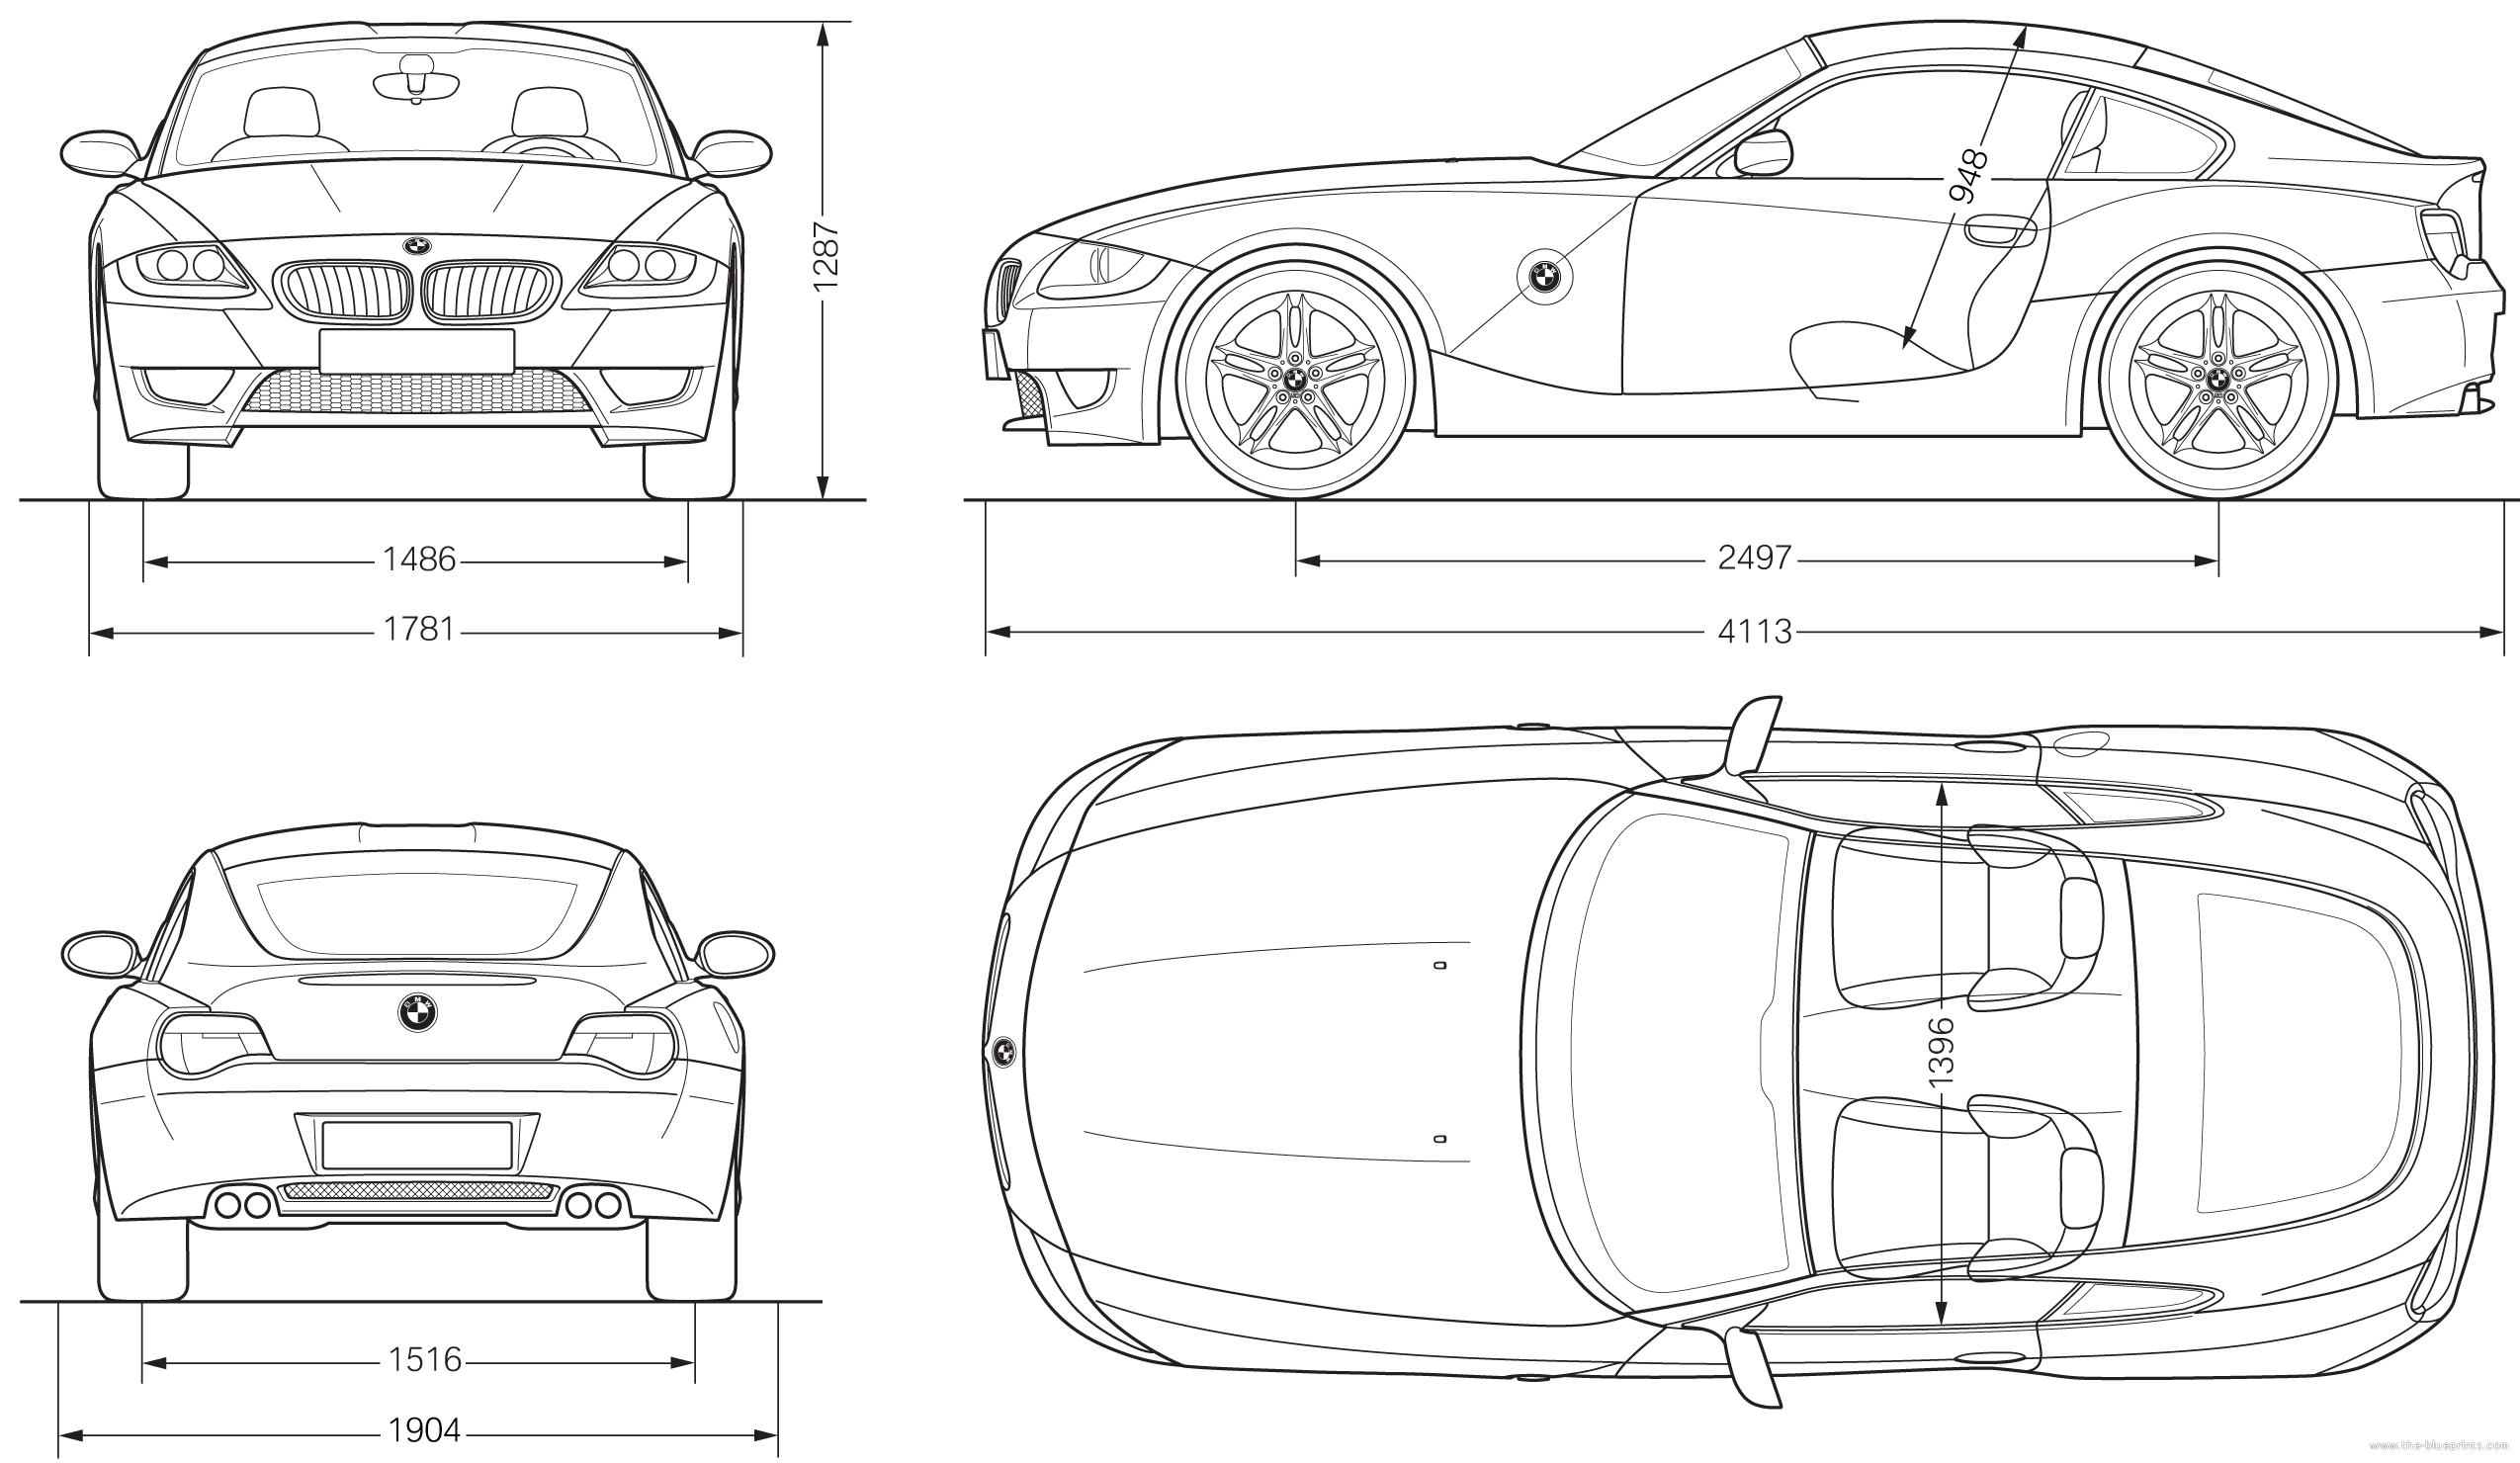 Cad File Of Z4m Coupe